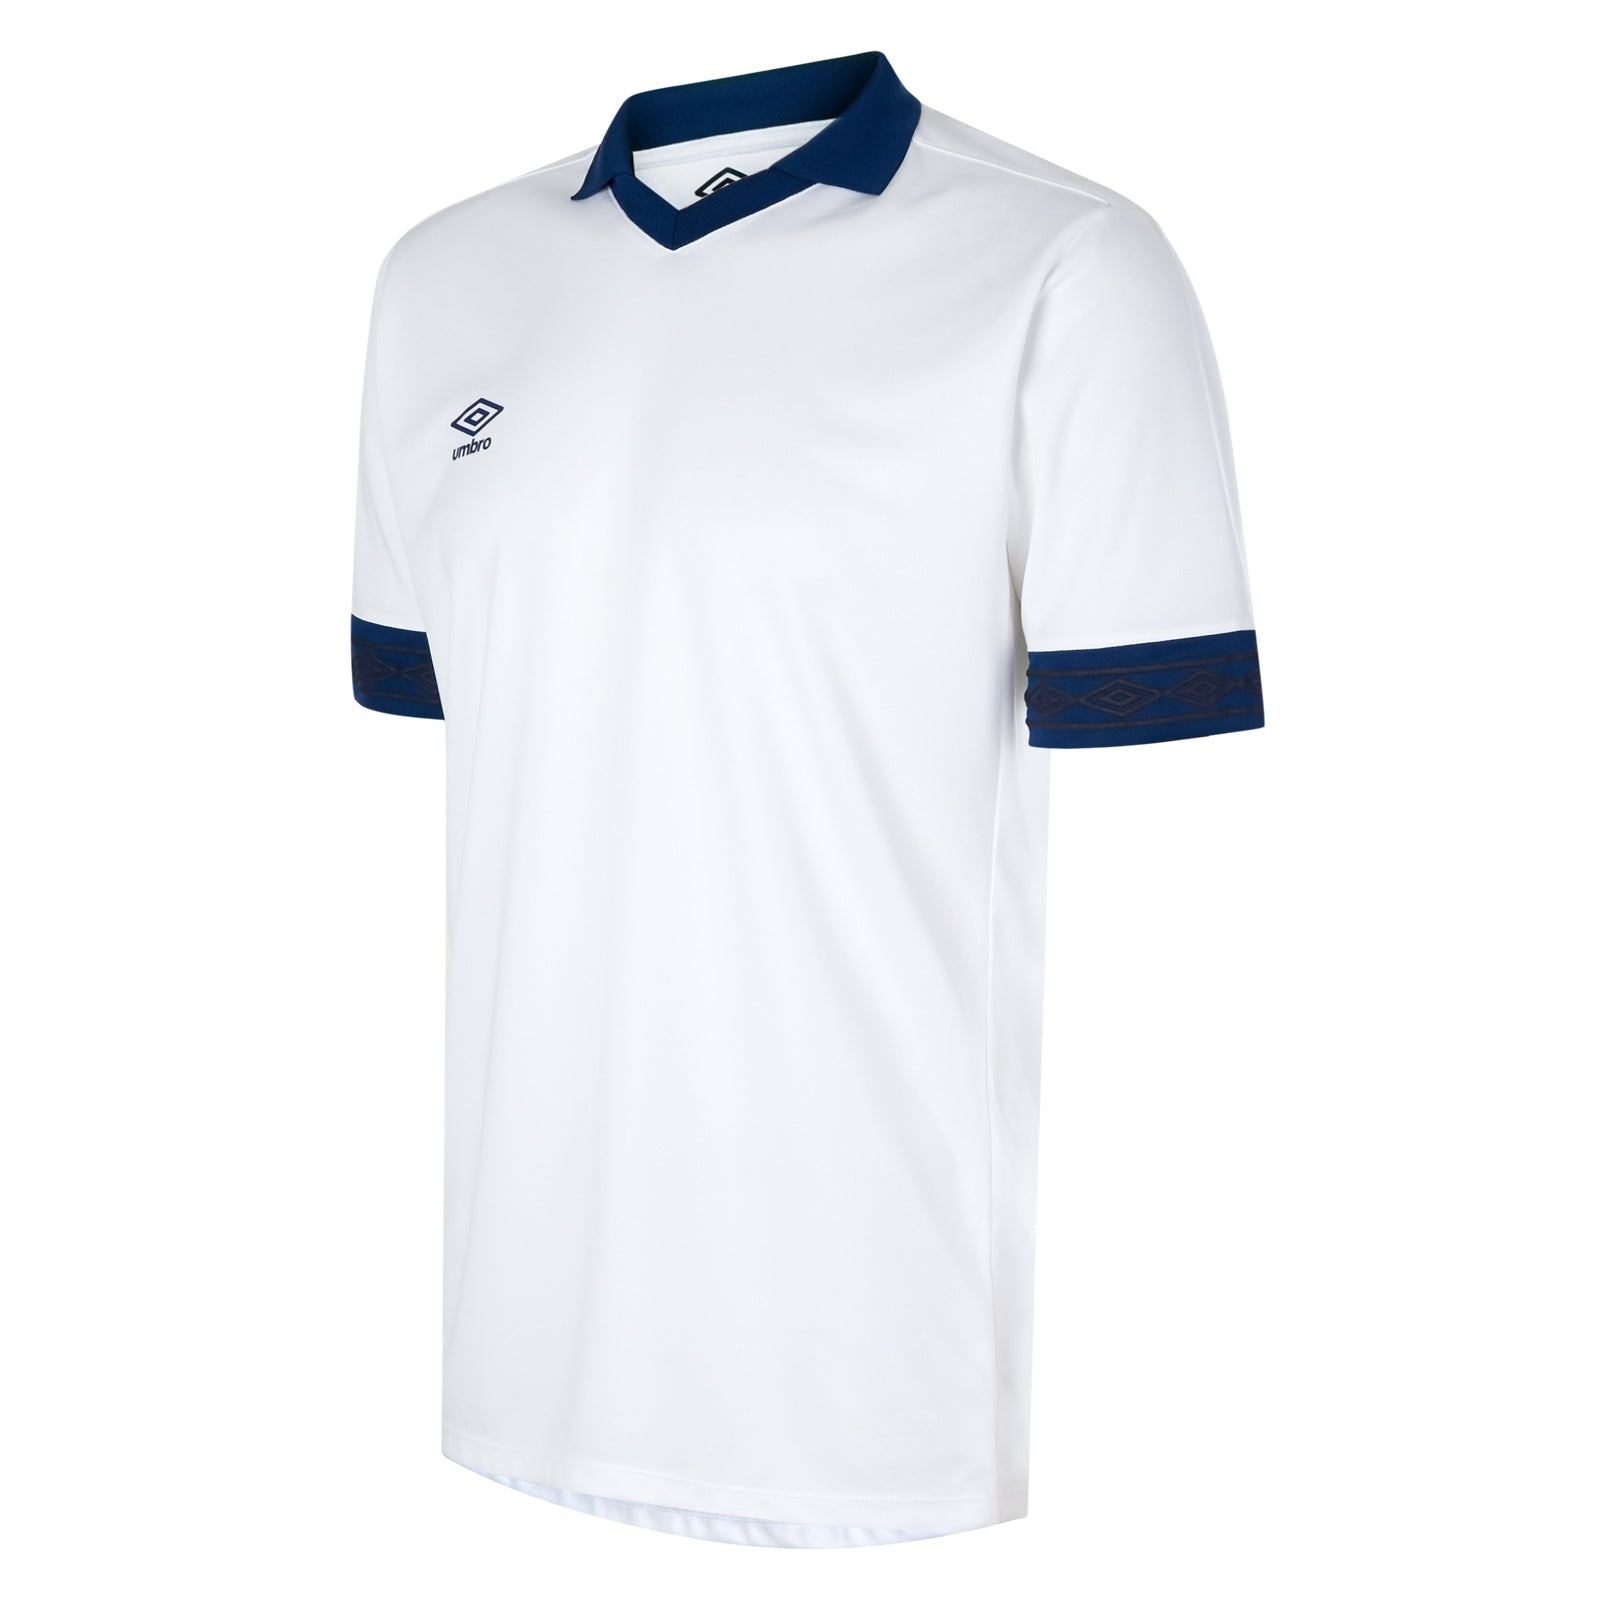 Umbro Tempest jersey short sleeve in white with contrast navy collar and cuff